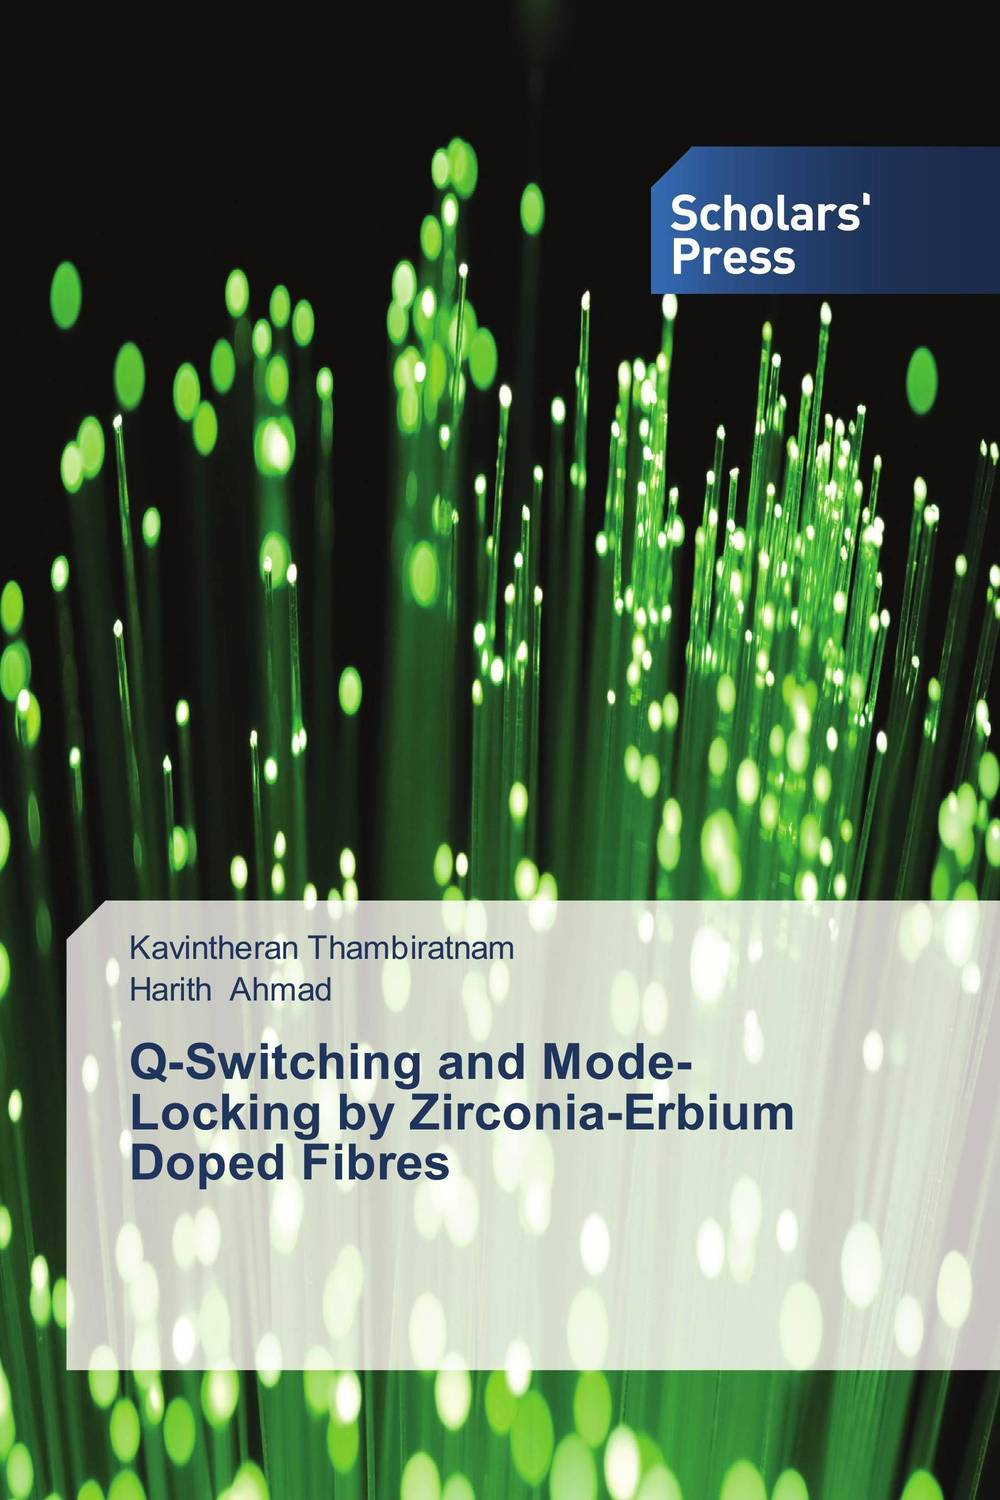 Q-Switching and Mode-Locking by Zirconia-Erbium Doped Fibres characteristics and applications of a novel alcohol oxidase